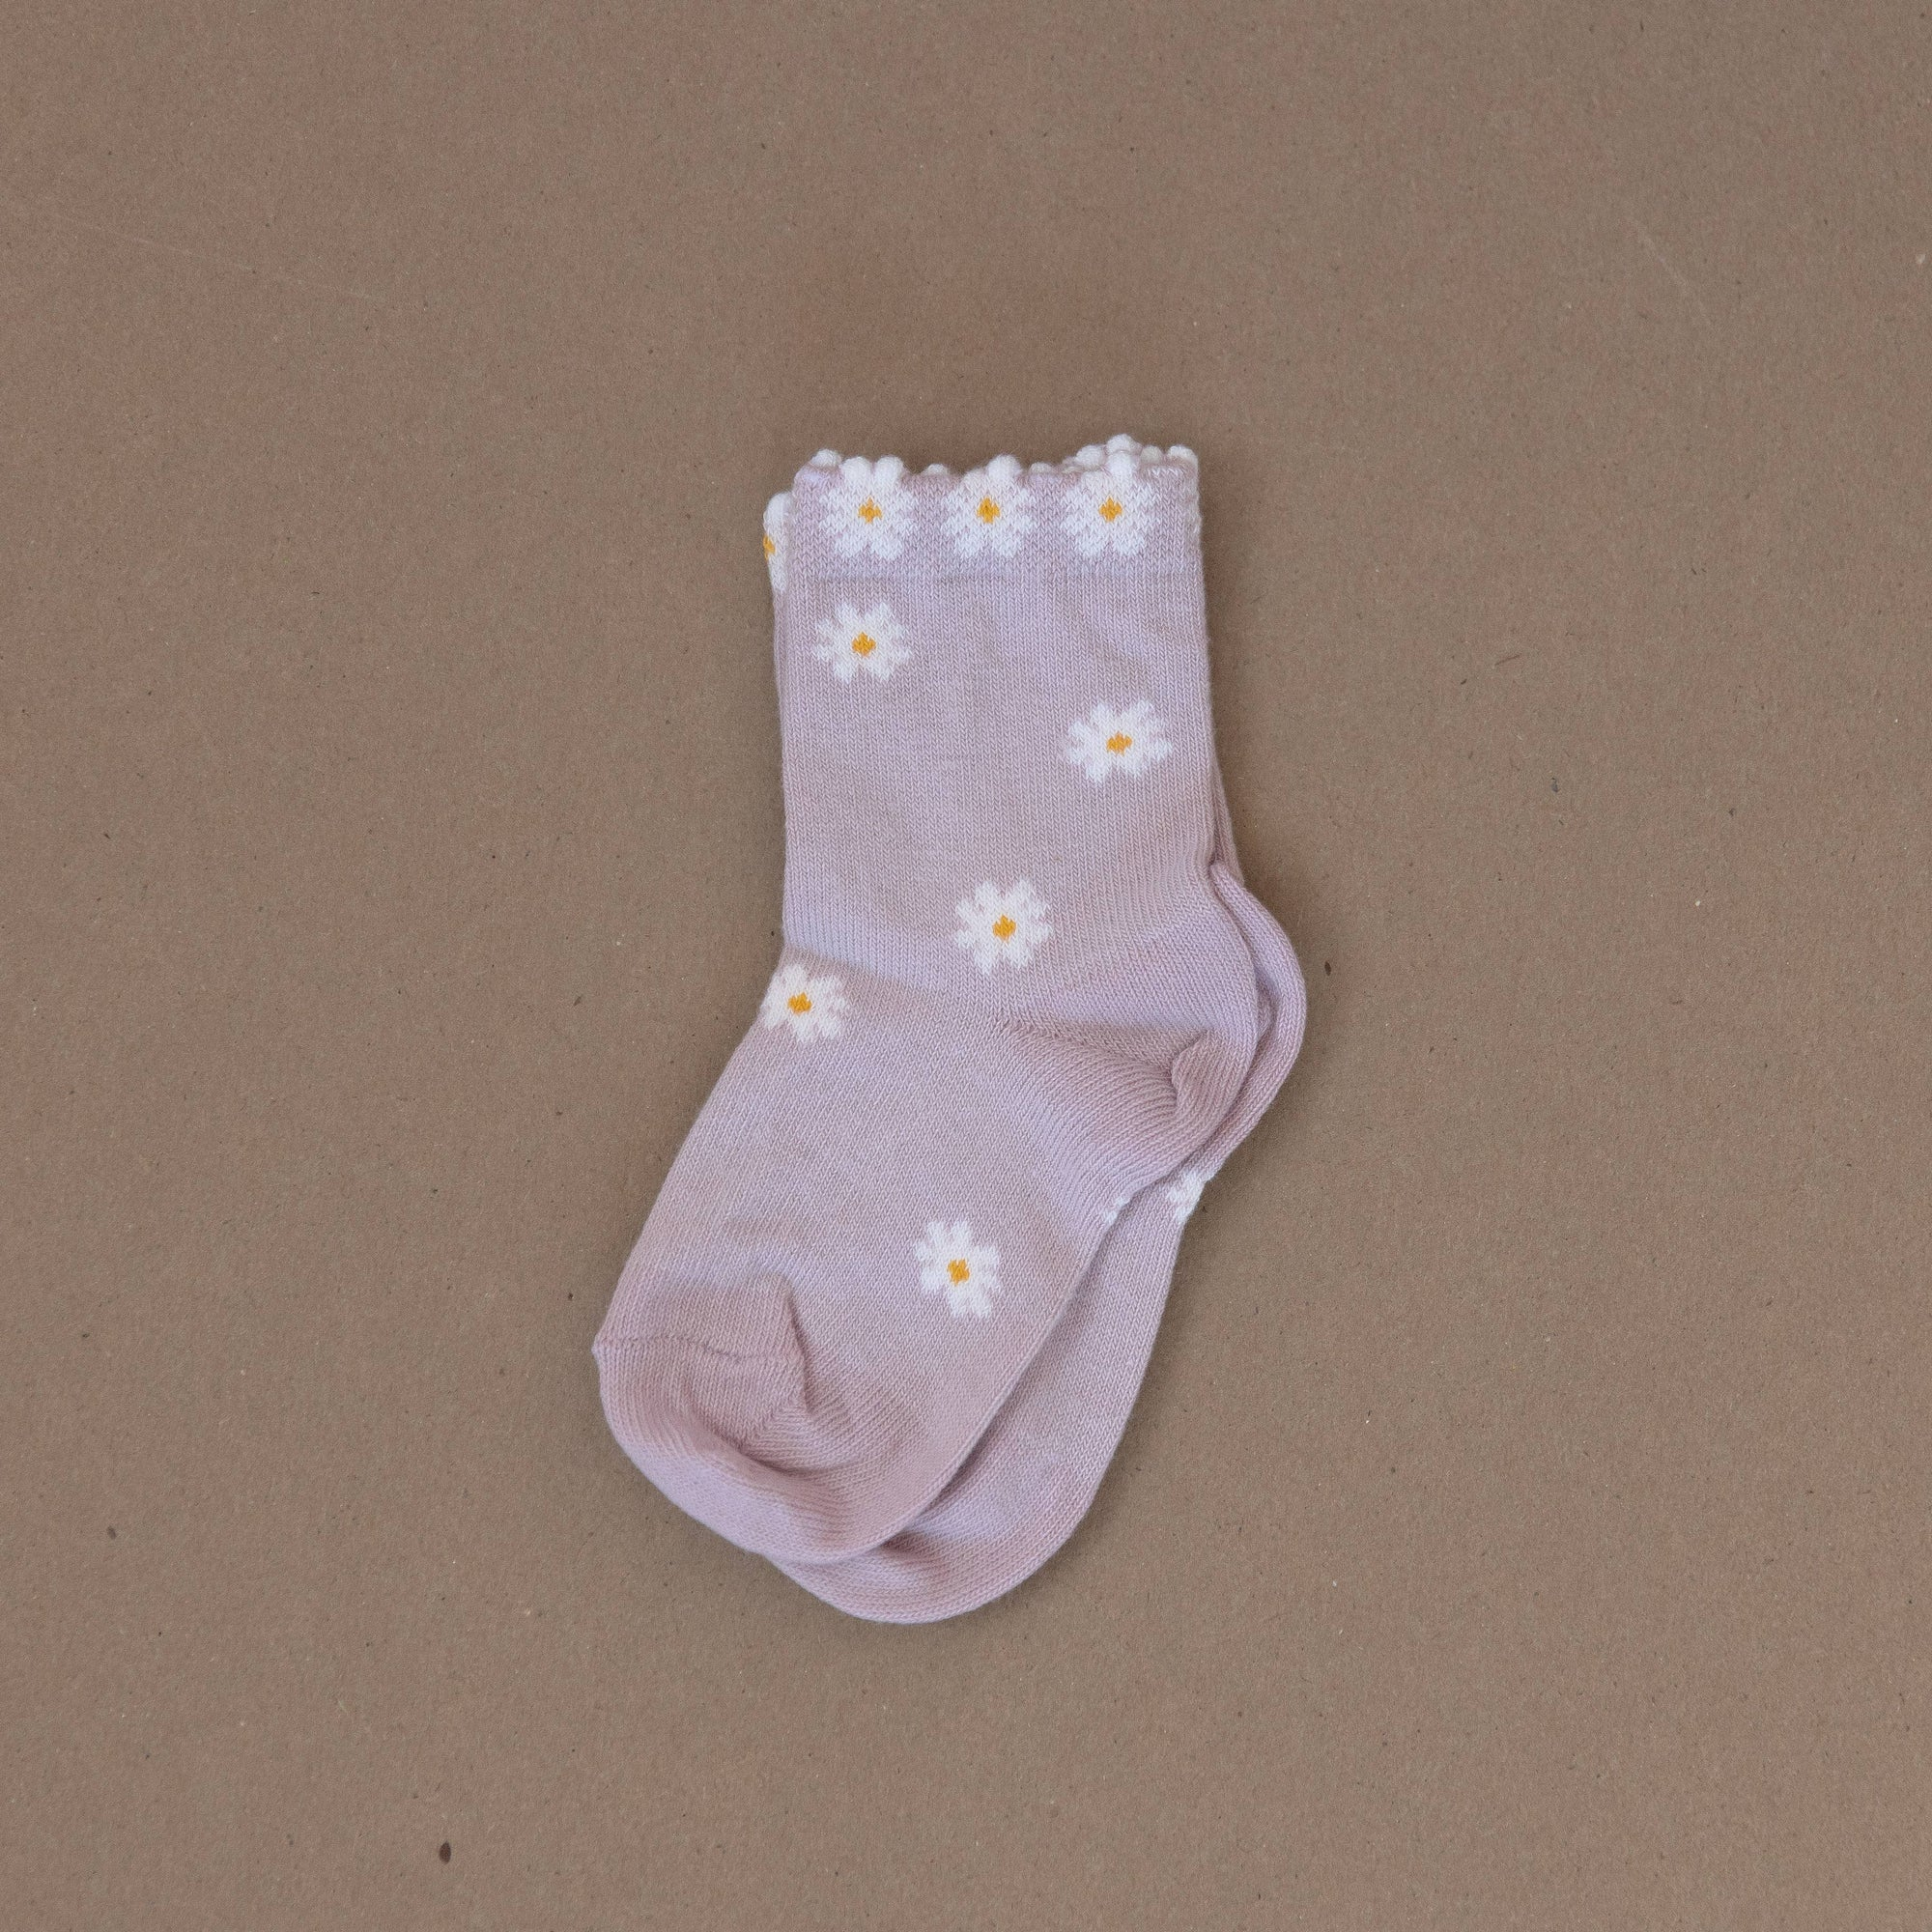 Coco Daisy Ankle Sock for Kids and Baby